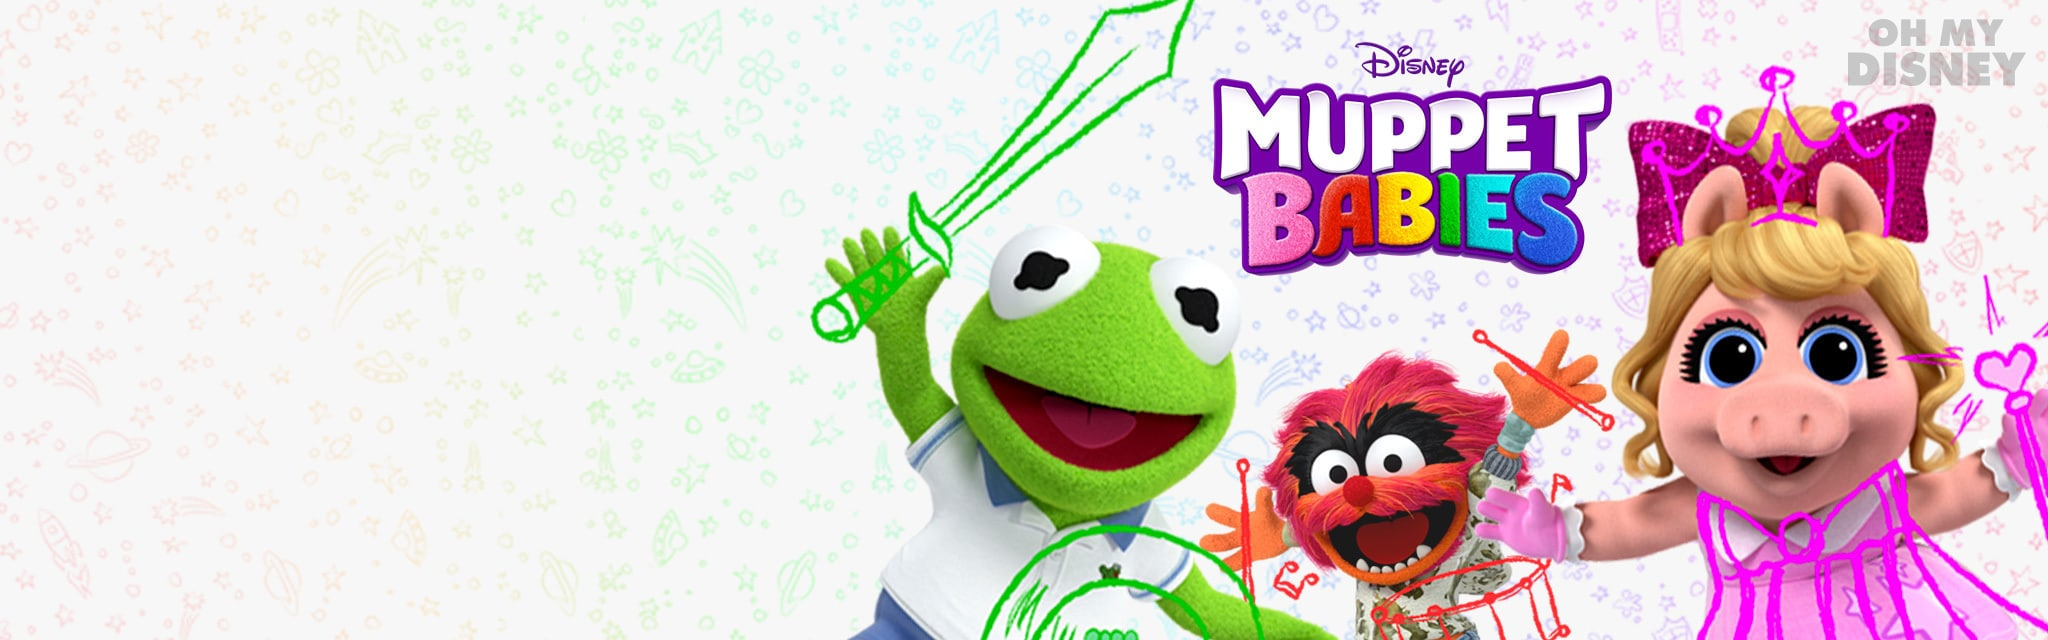 Muppet Babies Premiere Now Airing on Disney Channel!